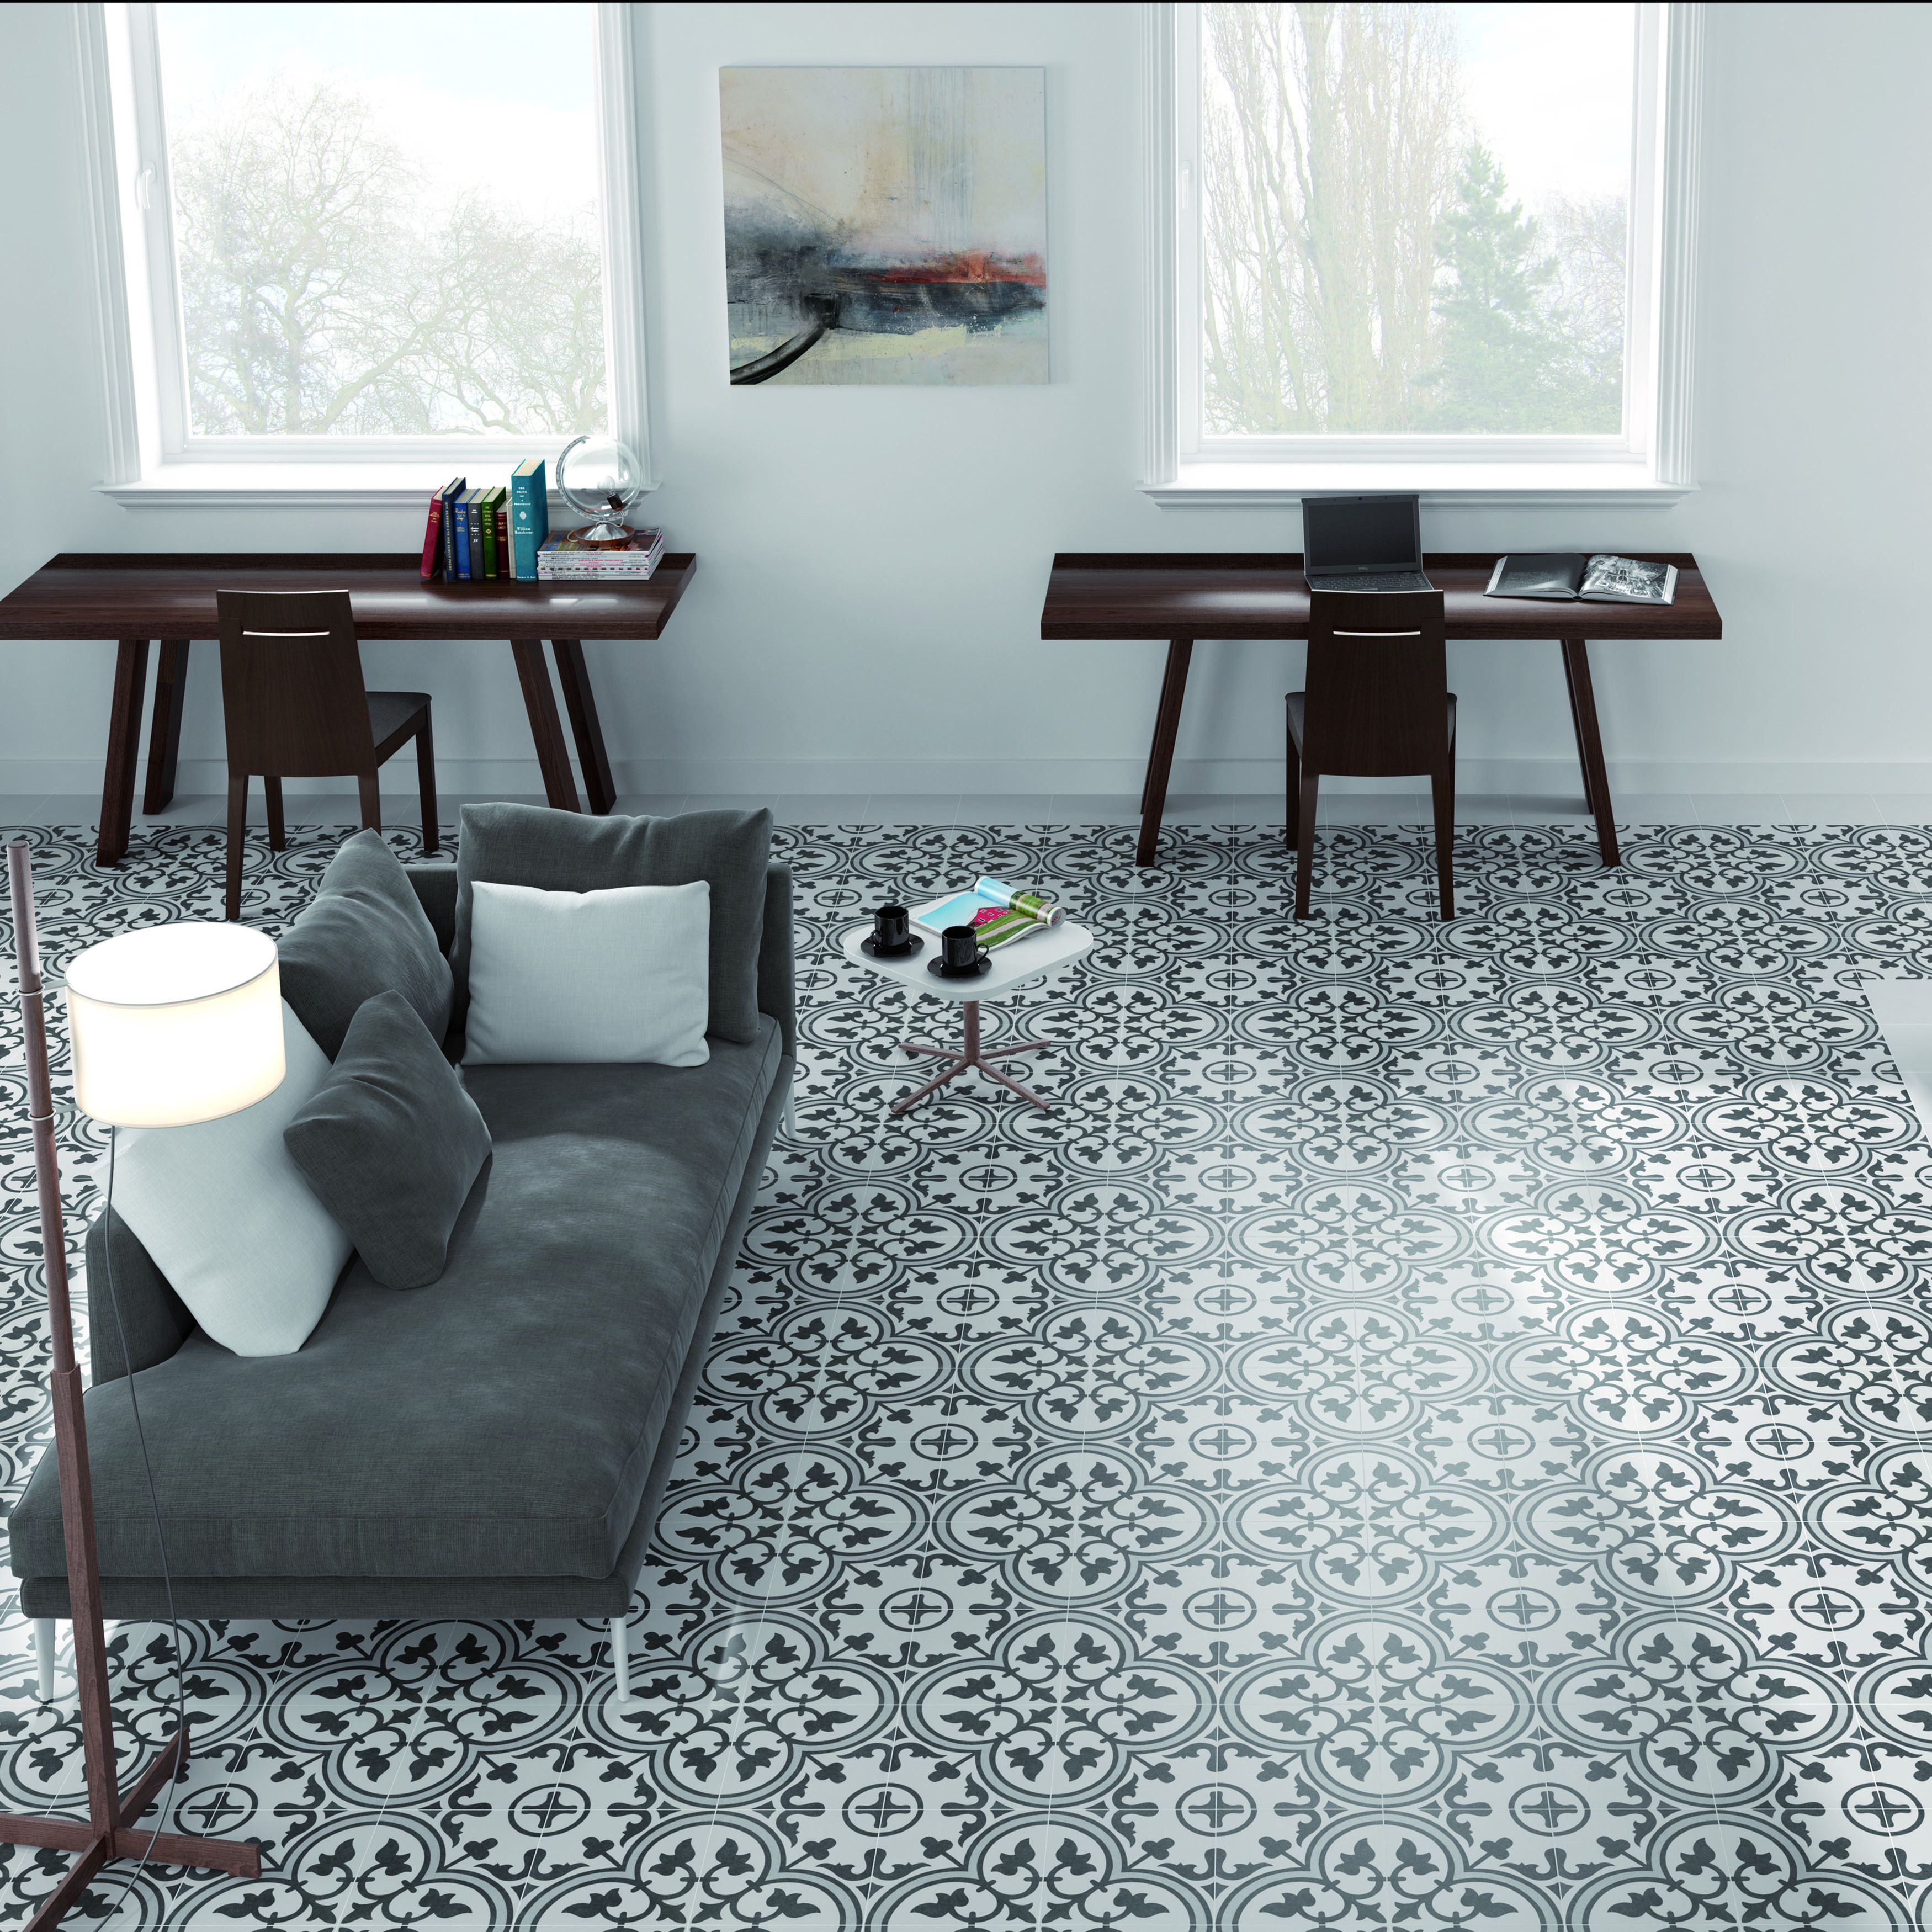 The SomerTile 9.5x9.5-inch Art Grey Porcelain Floor and Wall Tile ...